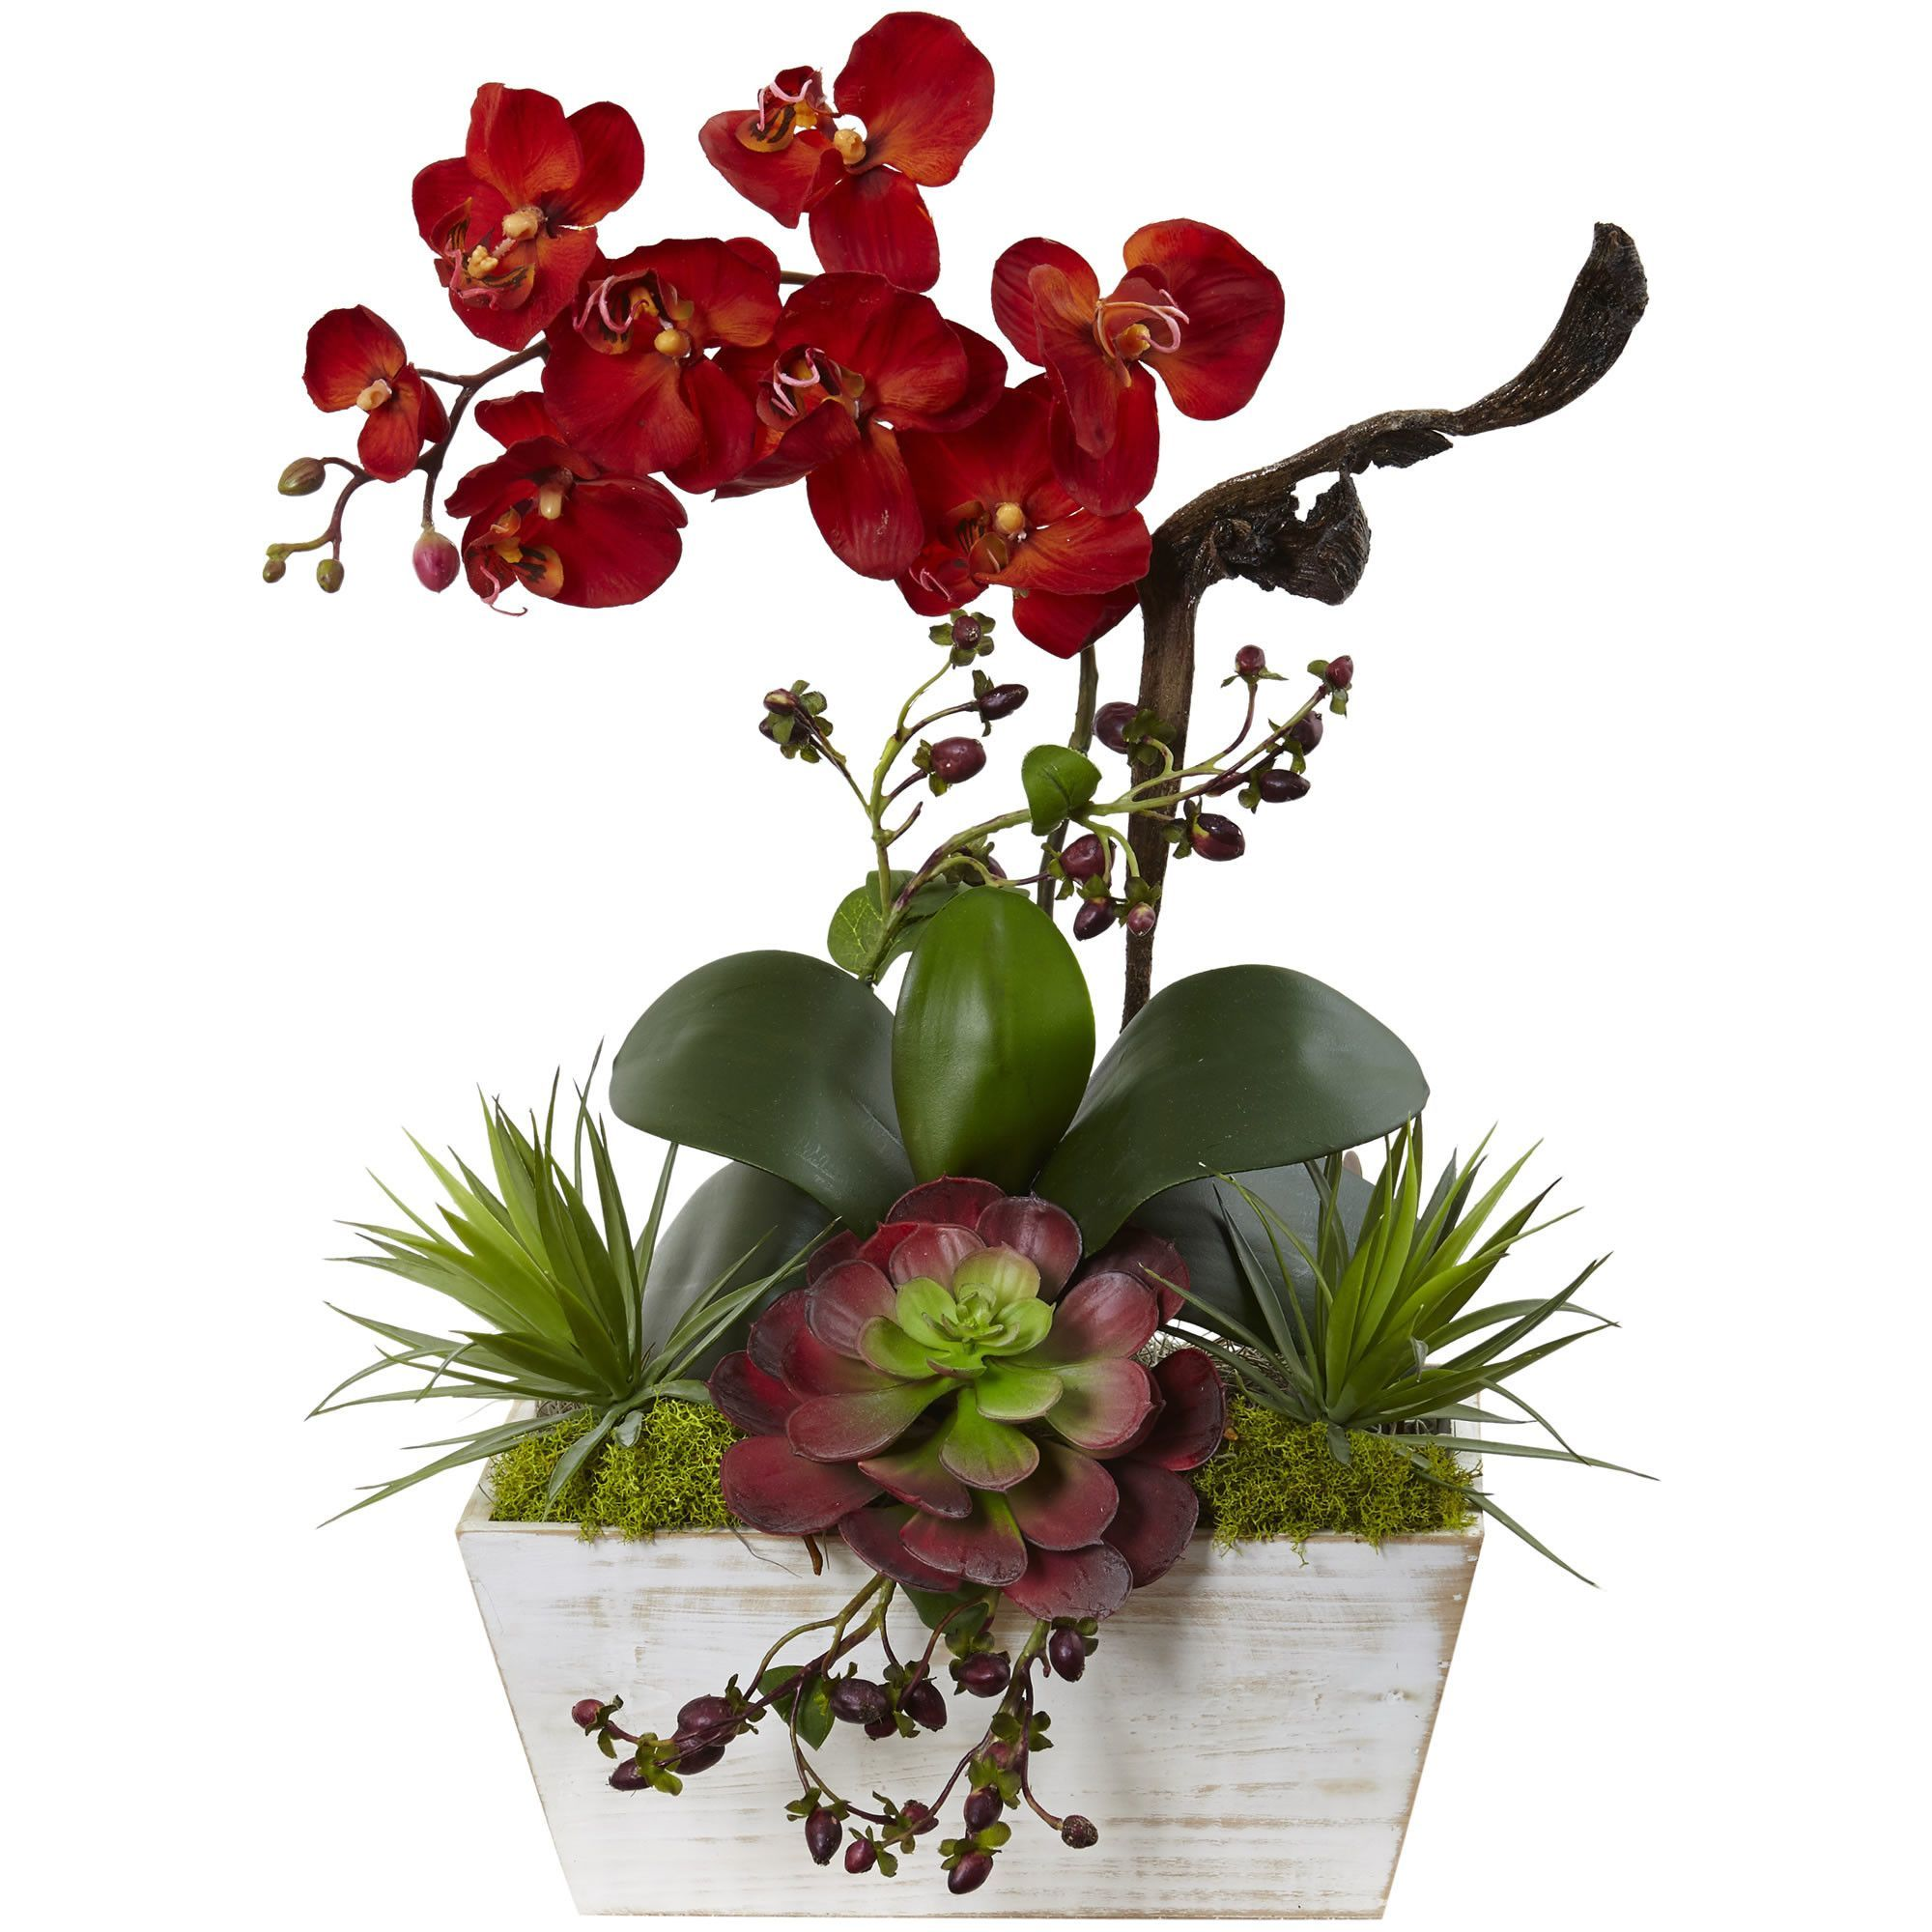 Seasonal orchid and succulent garden wash planter kitchen party the autumn orchid succulent silk flowers with planter will make a warm and welcoming addition to your home or office arrives in a contemporary whitewash mightylinksfo